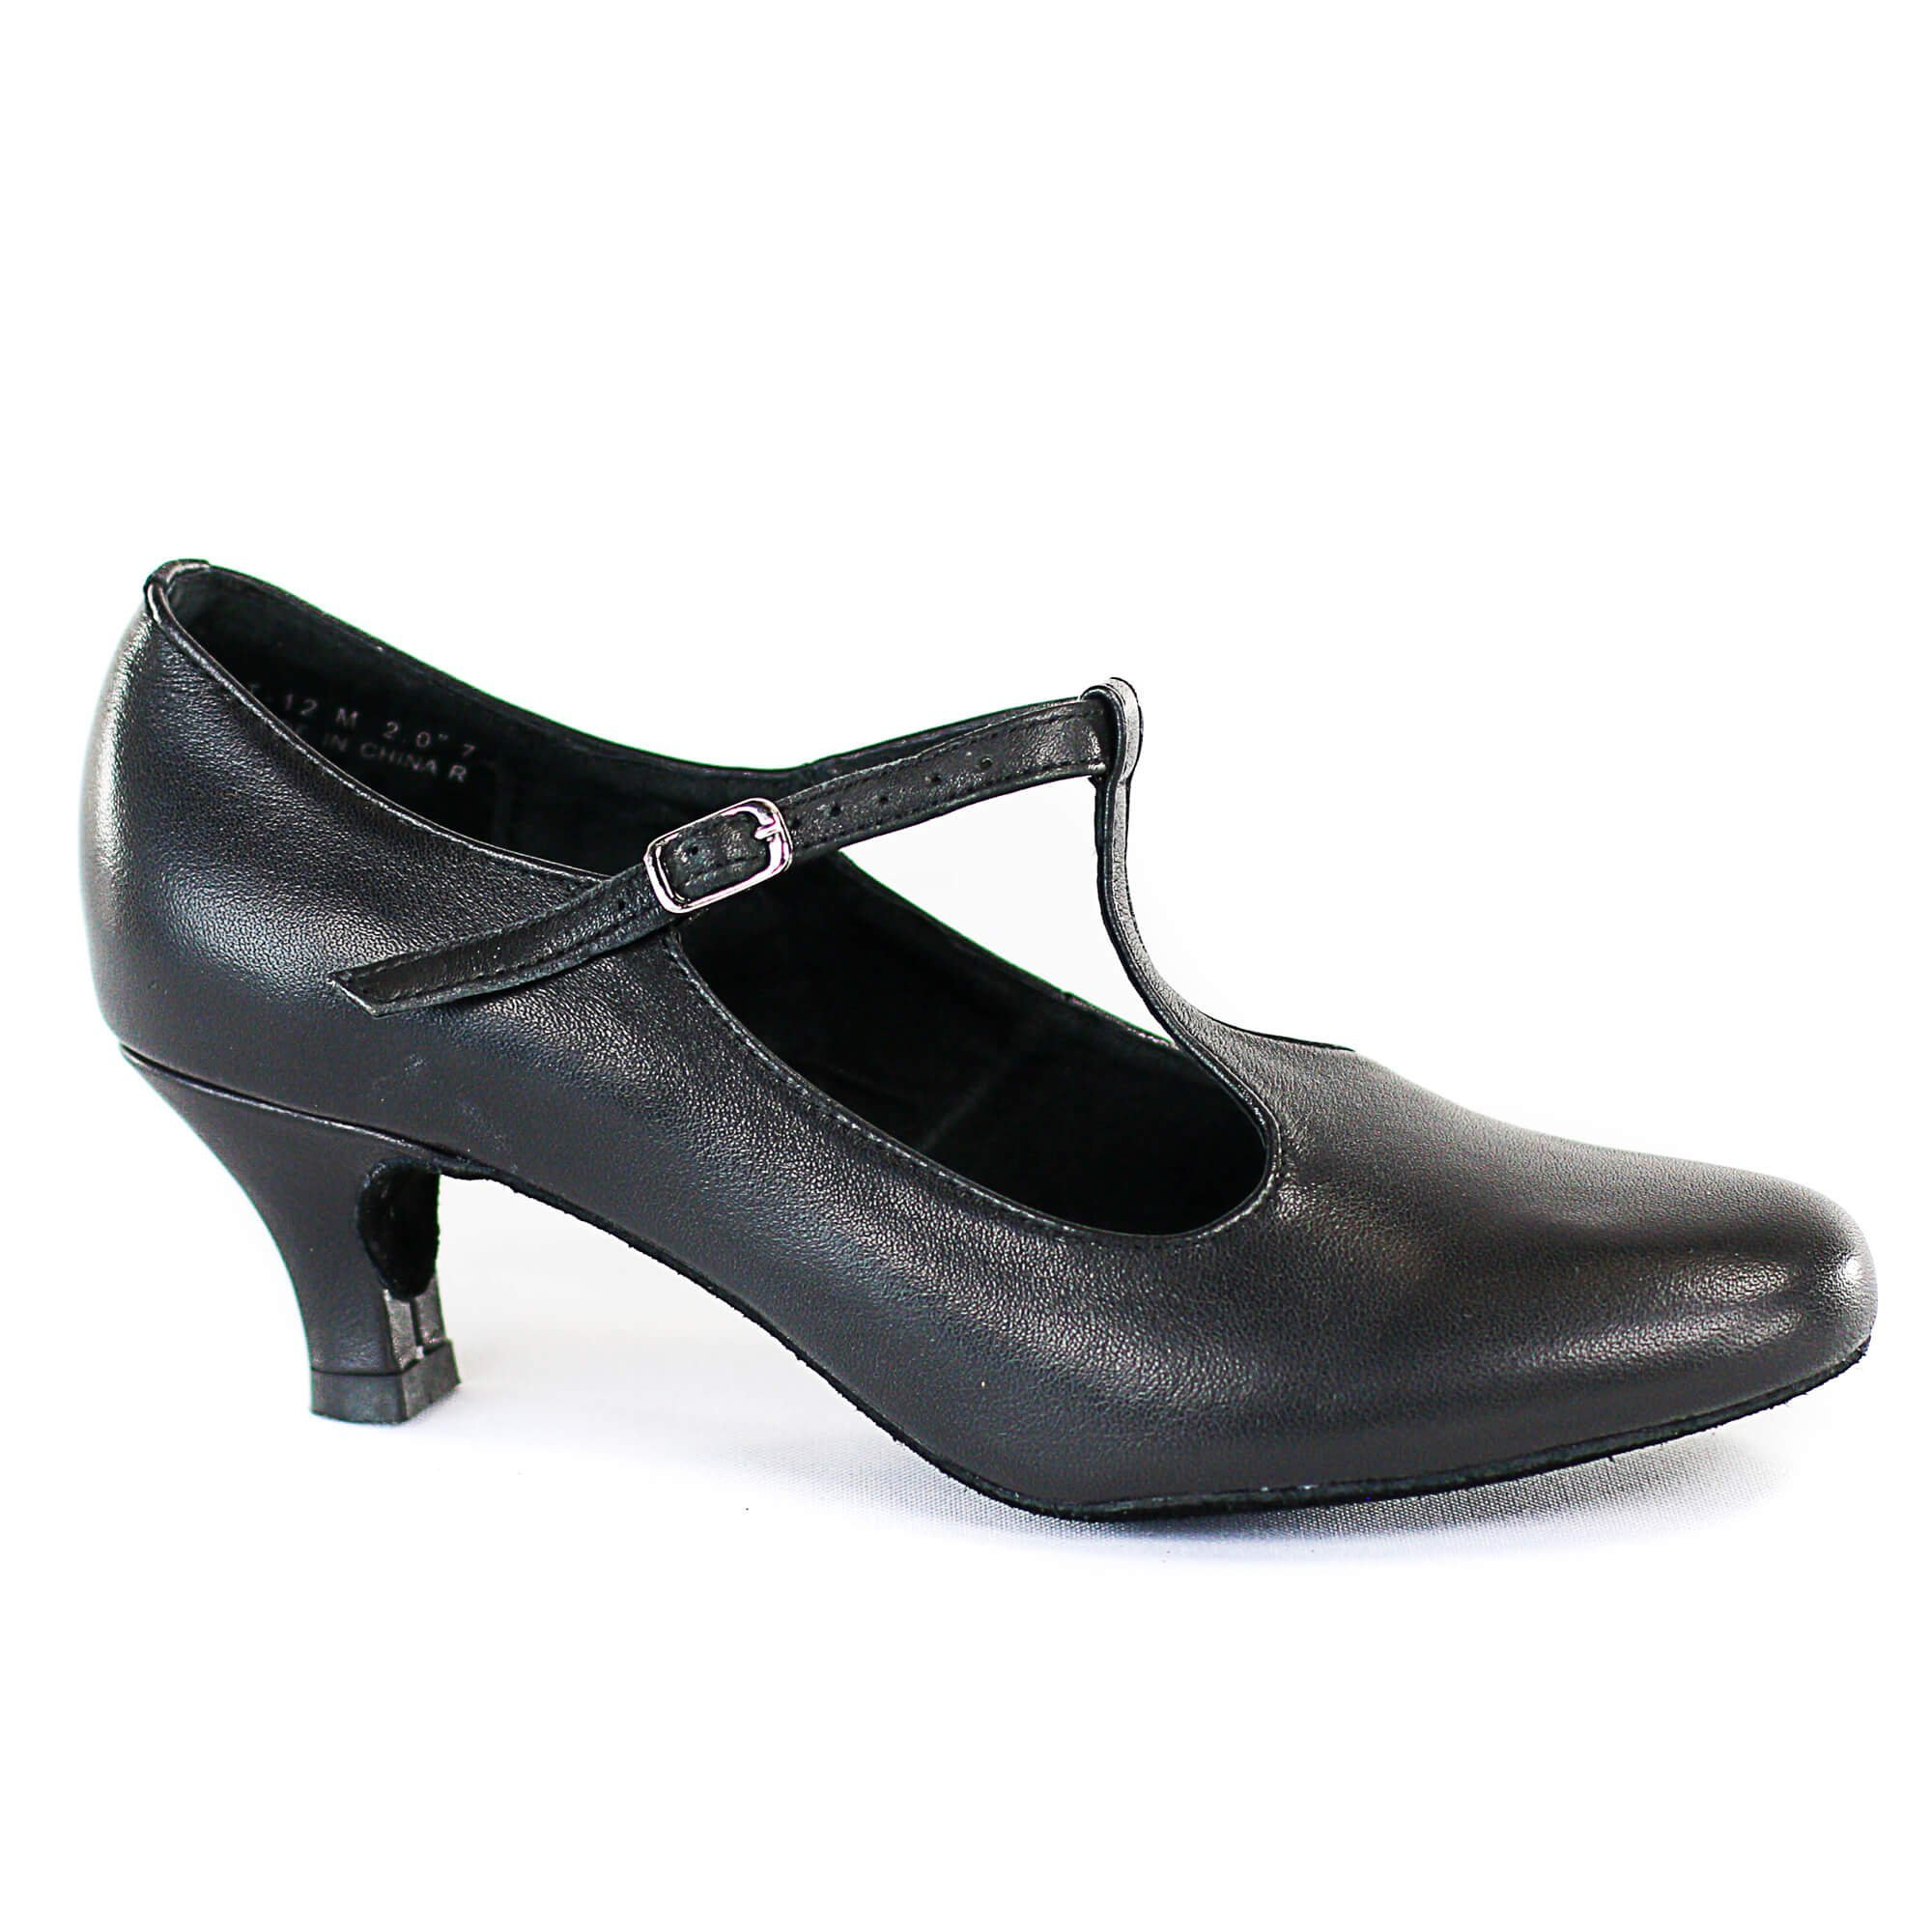 "Dimichi ""Lena"" Leather Insole Heel 2"" Ballroom Shoes"